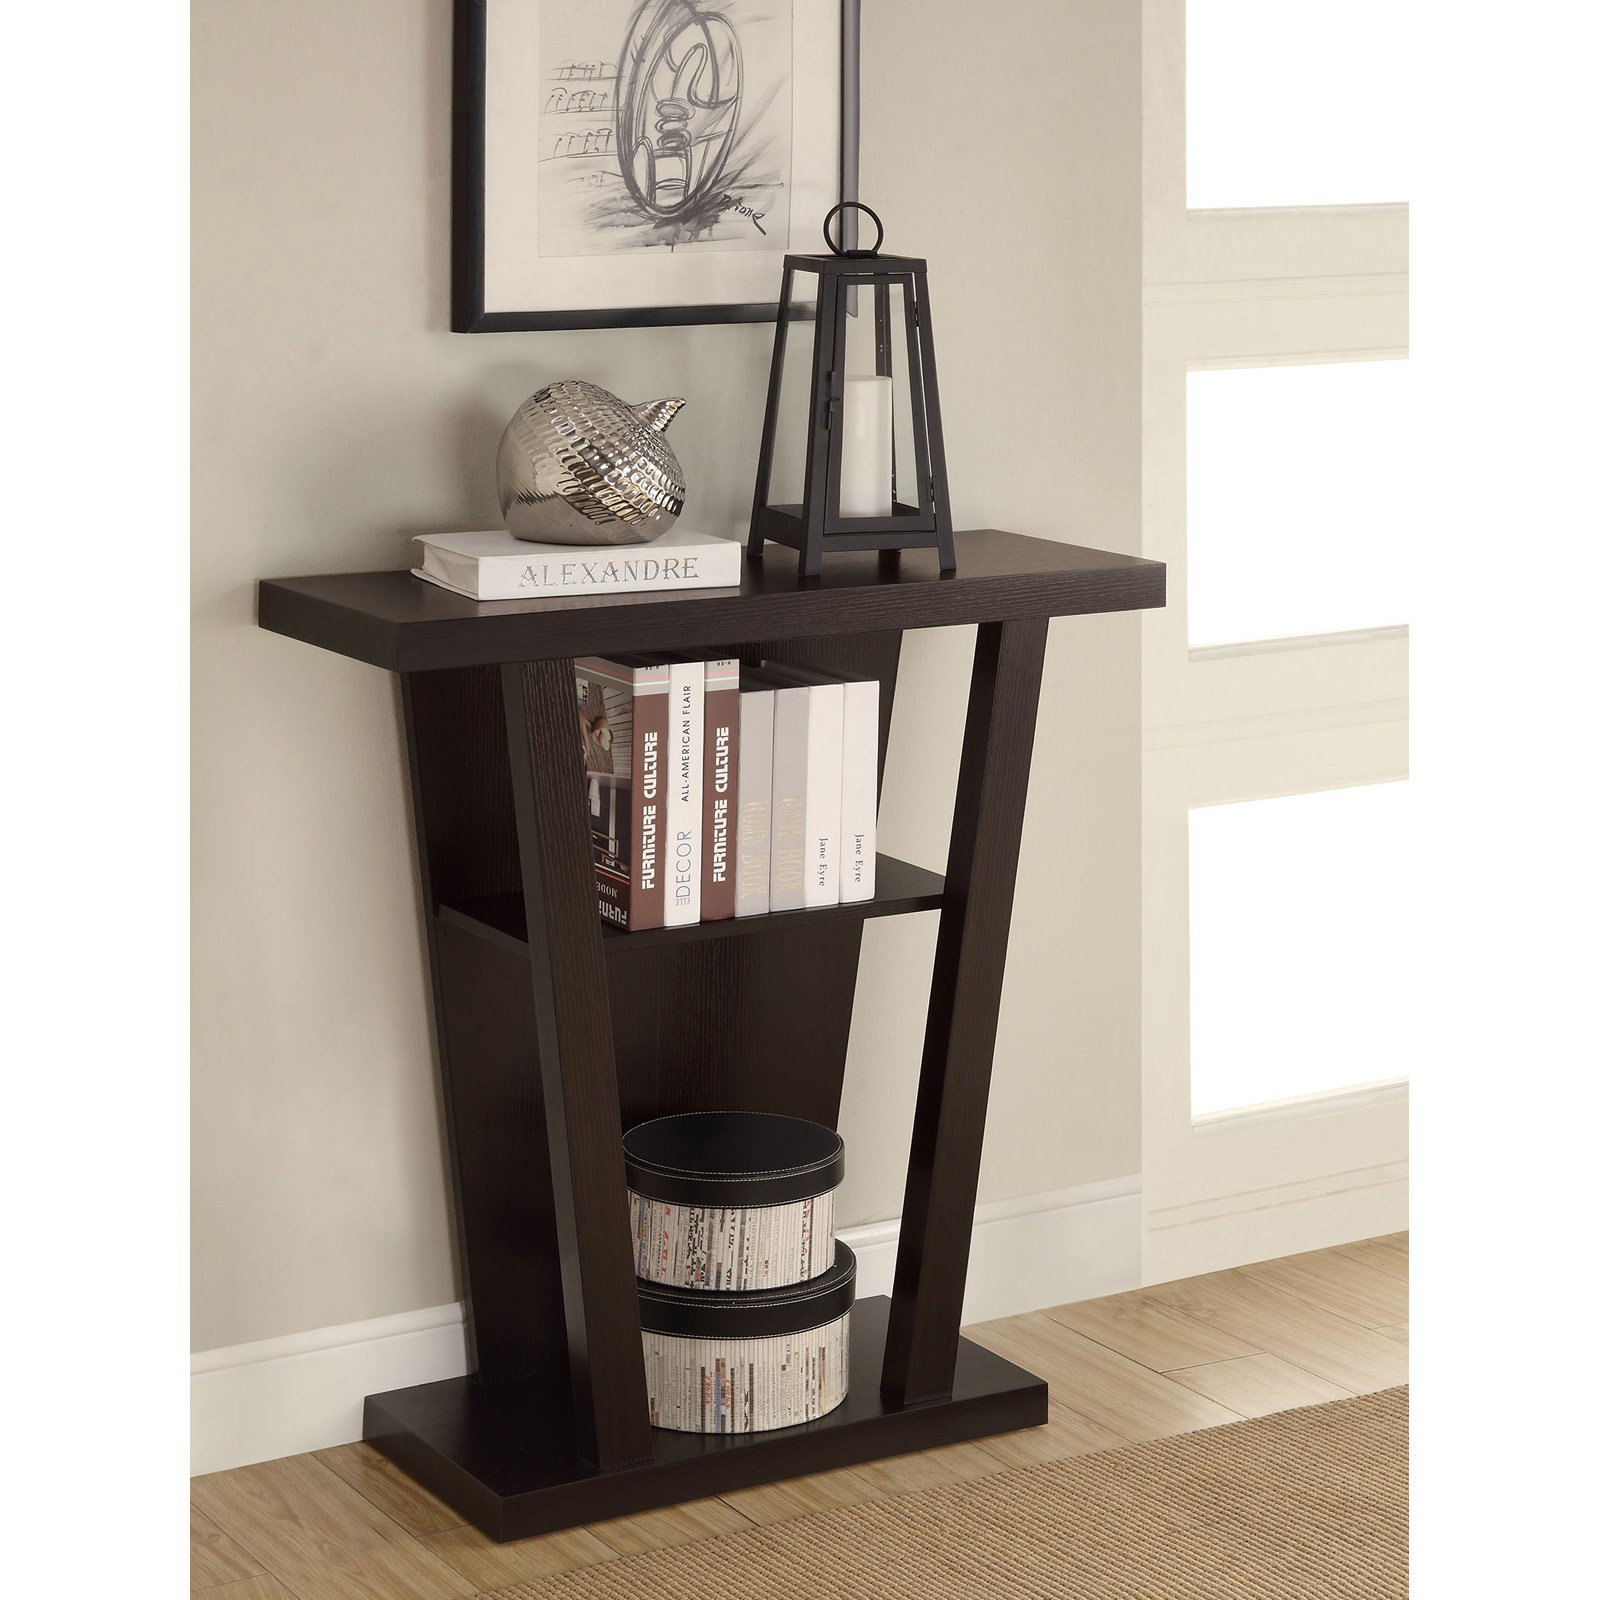 Coaster Company Console Table in Cappuccino